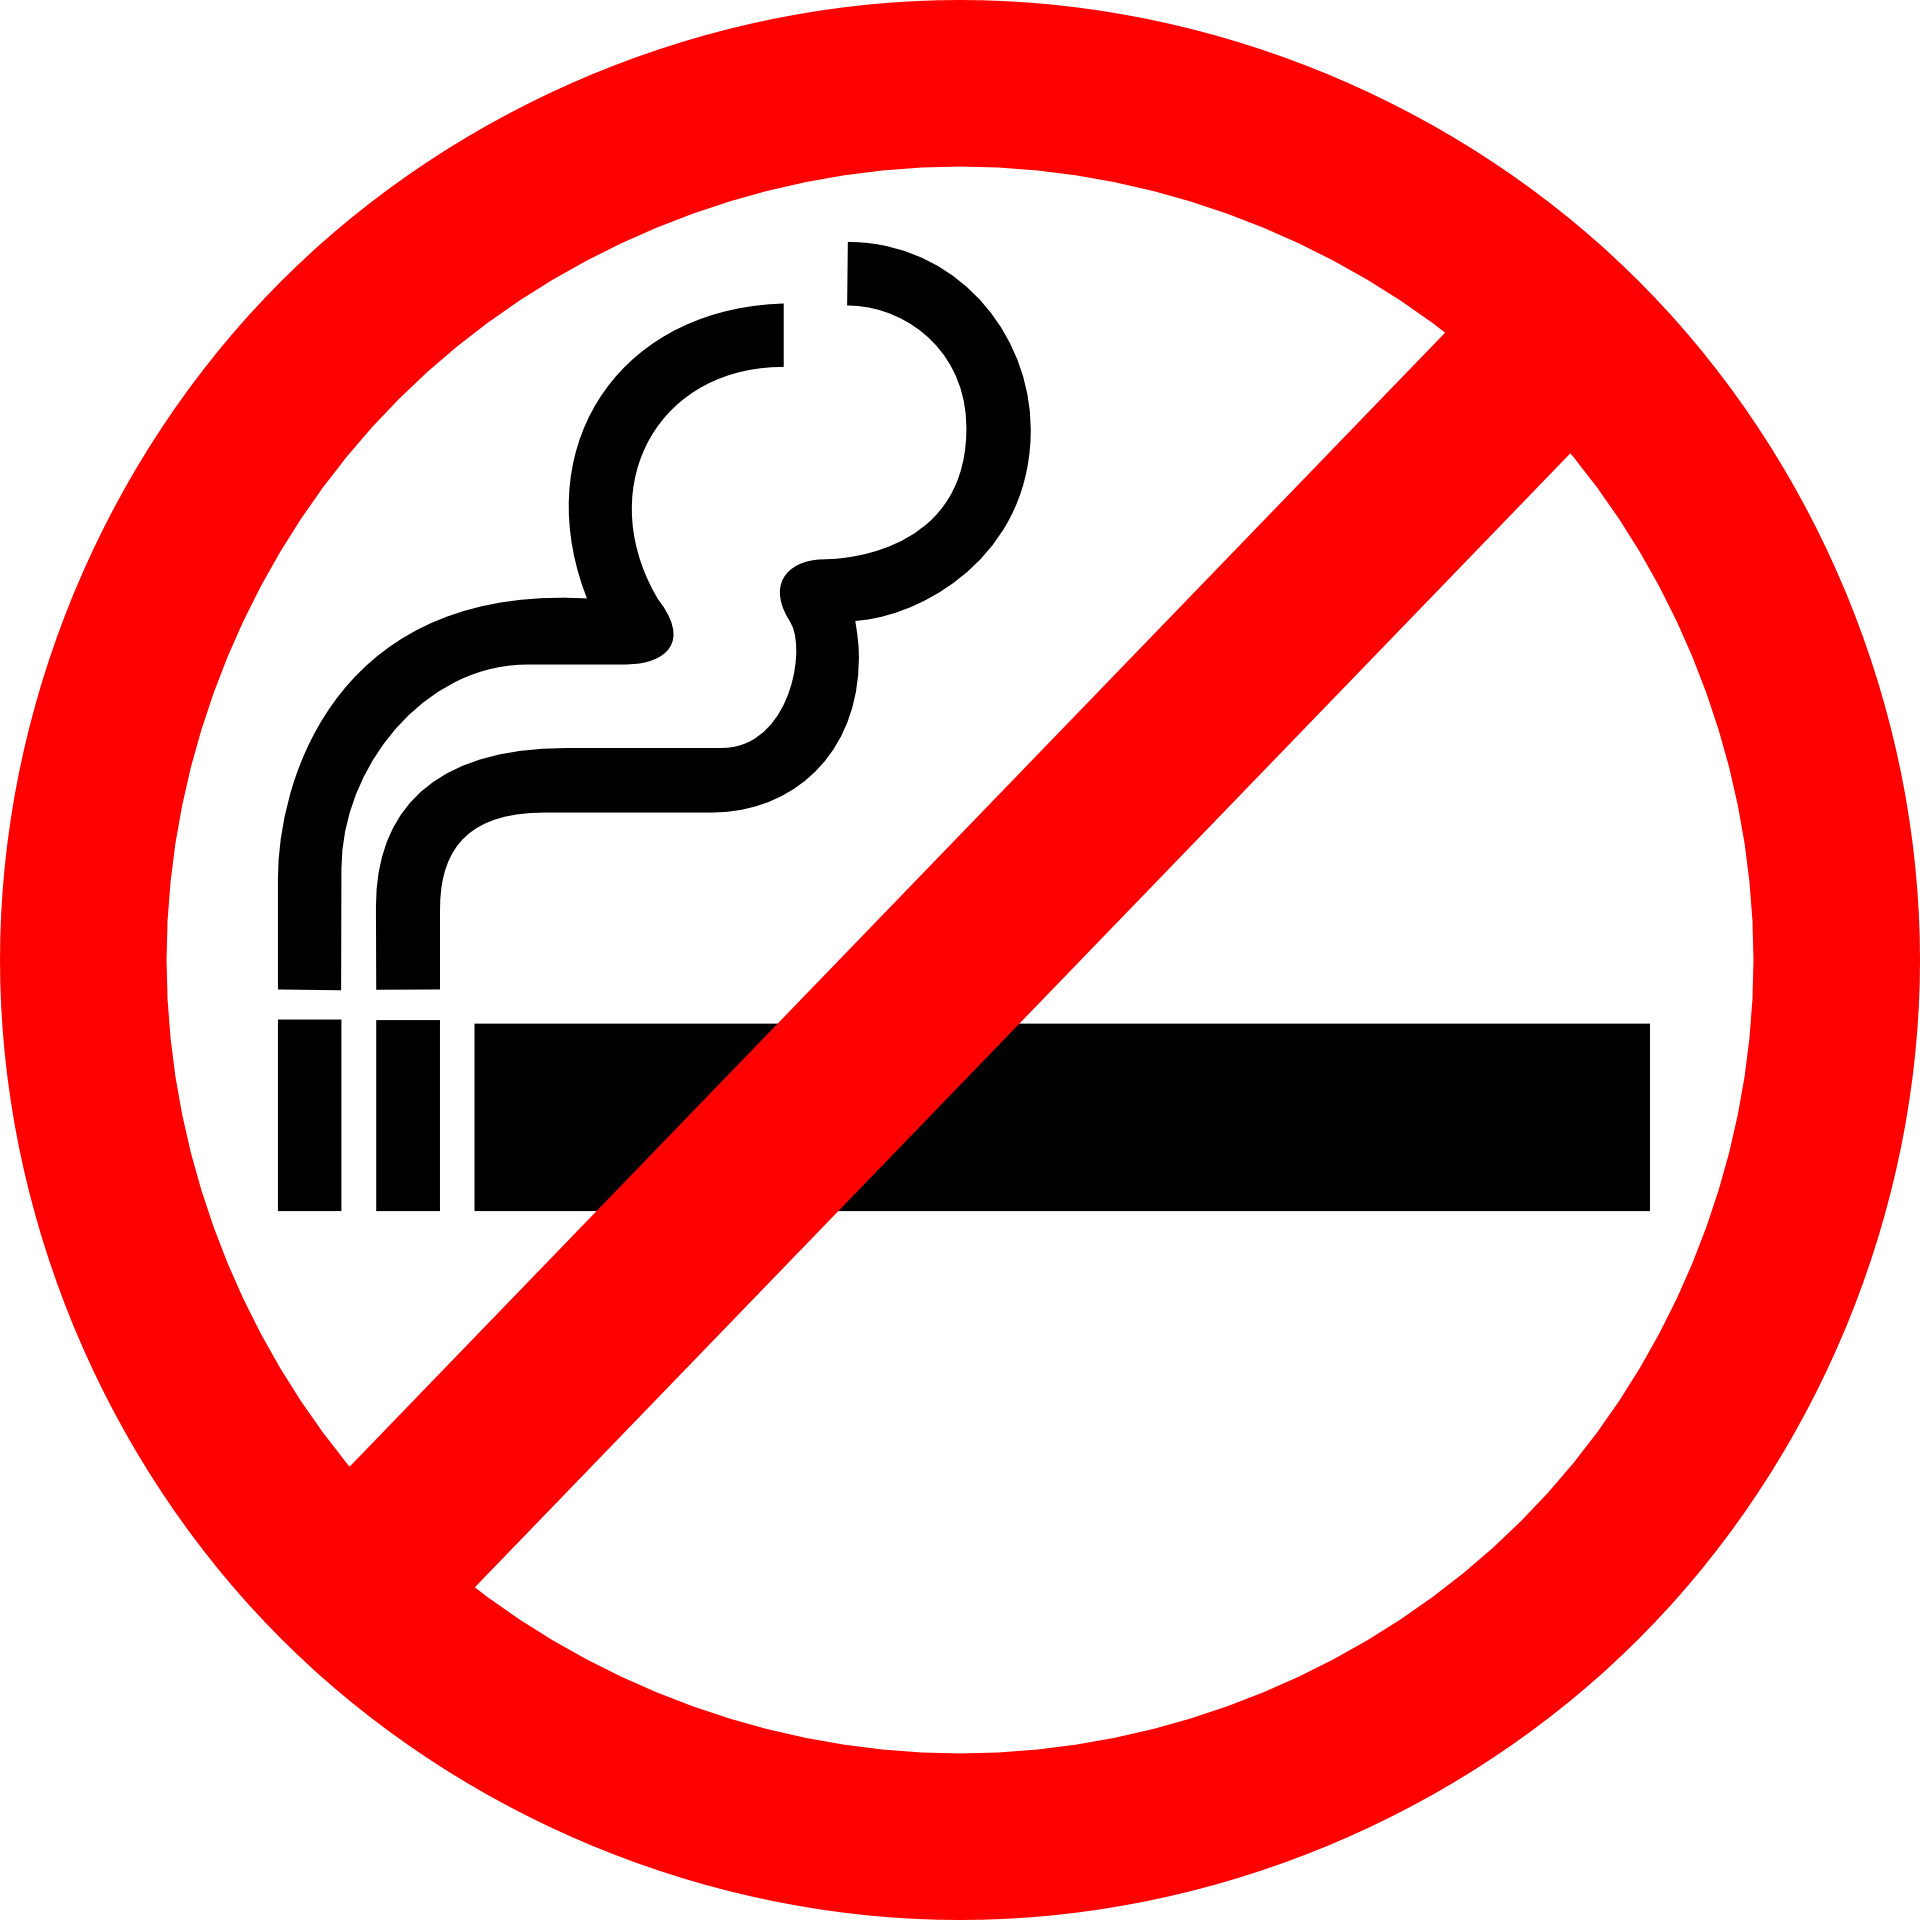 Why s it so. Cigarette clipart cigarette alcohol